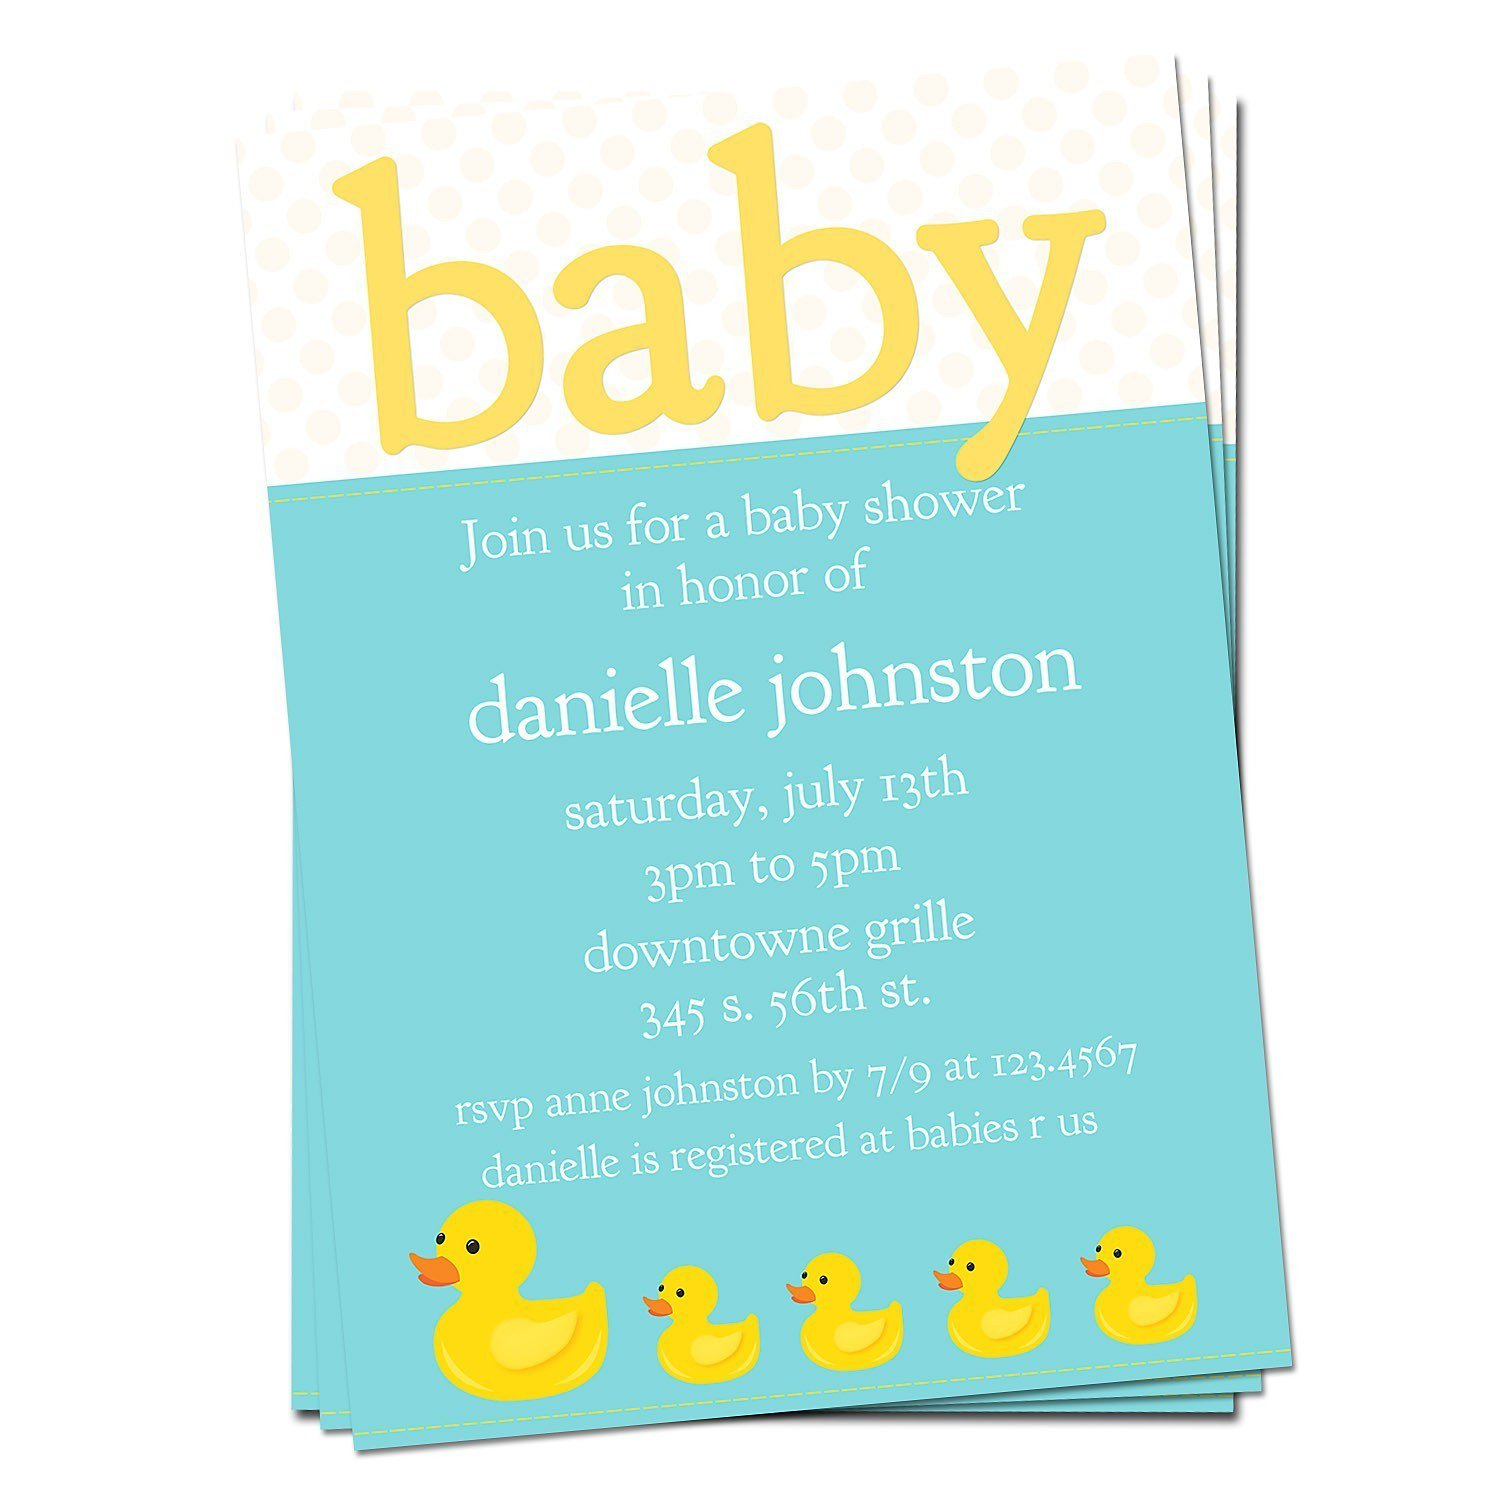 Duck shower invitations rubber duck shower invitations 1500 x 1500 stopboris Image collections